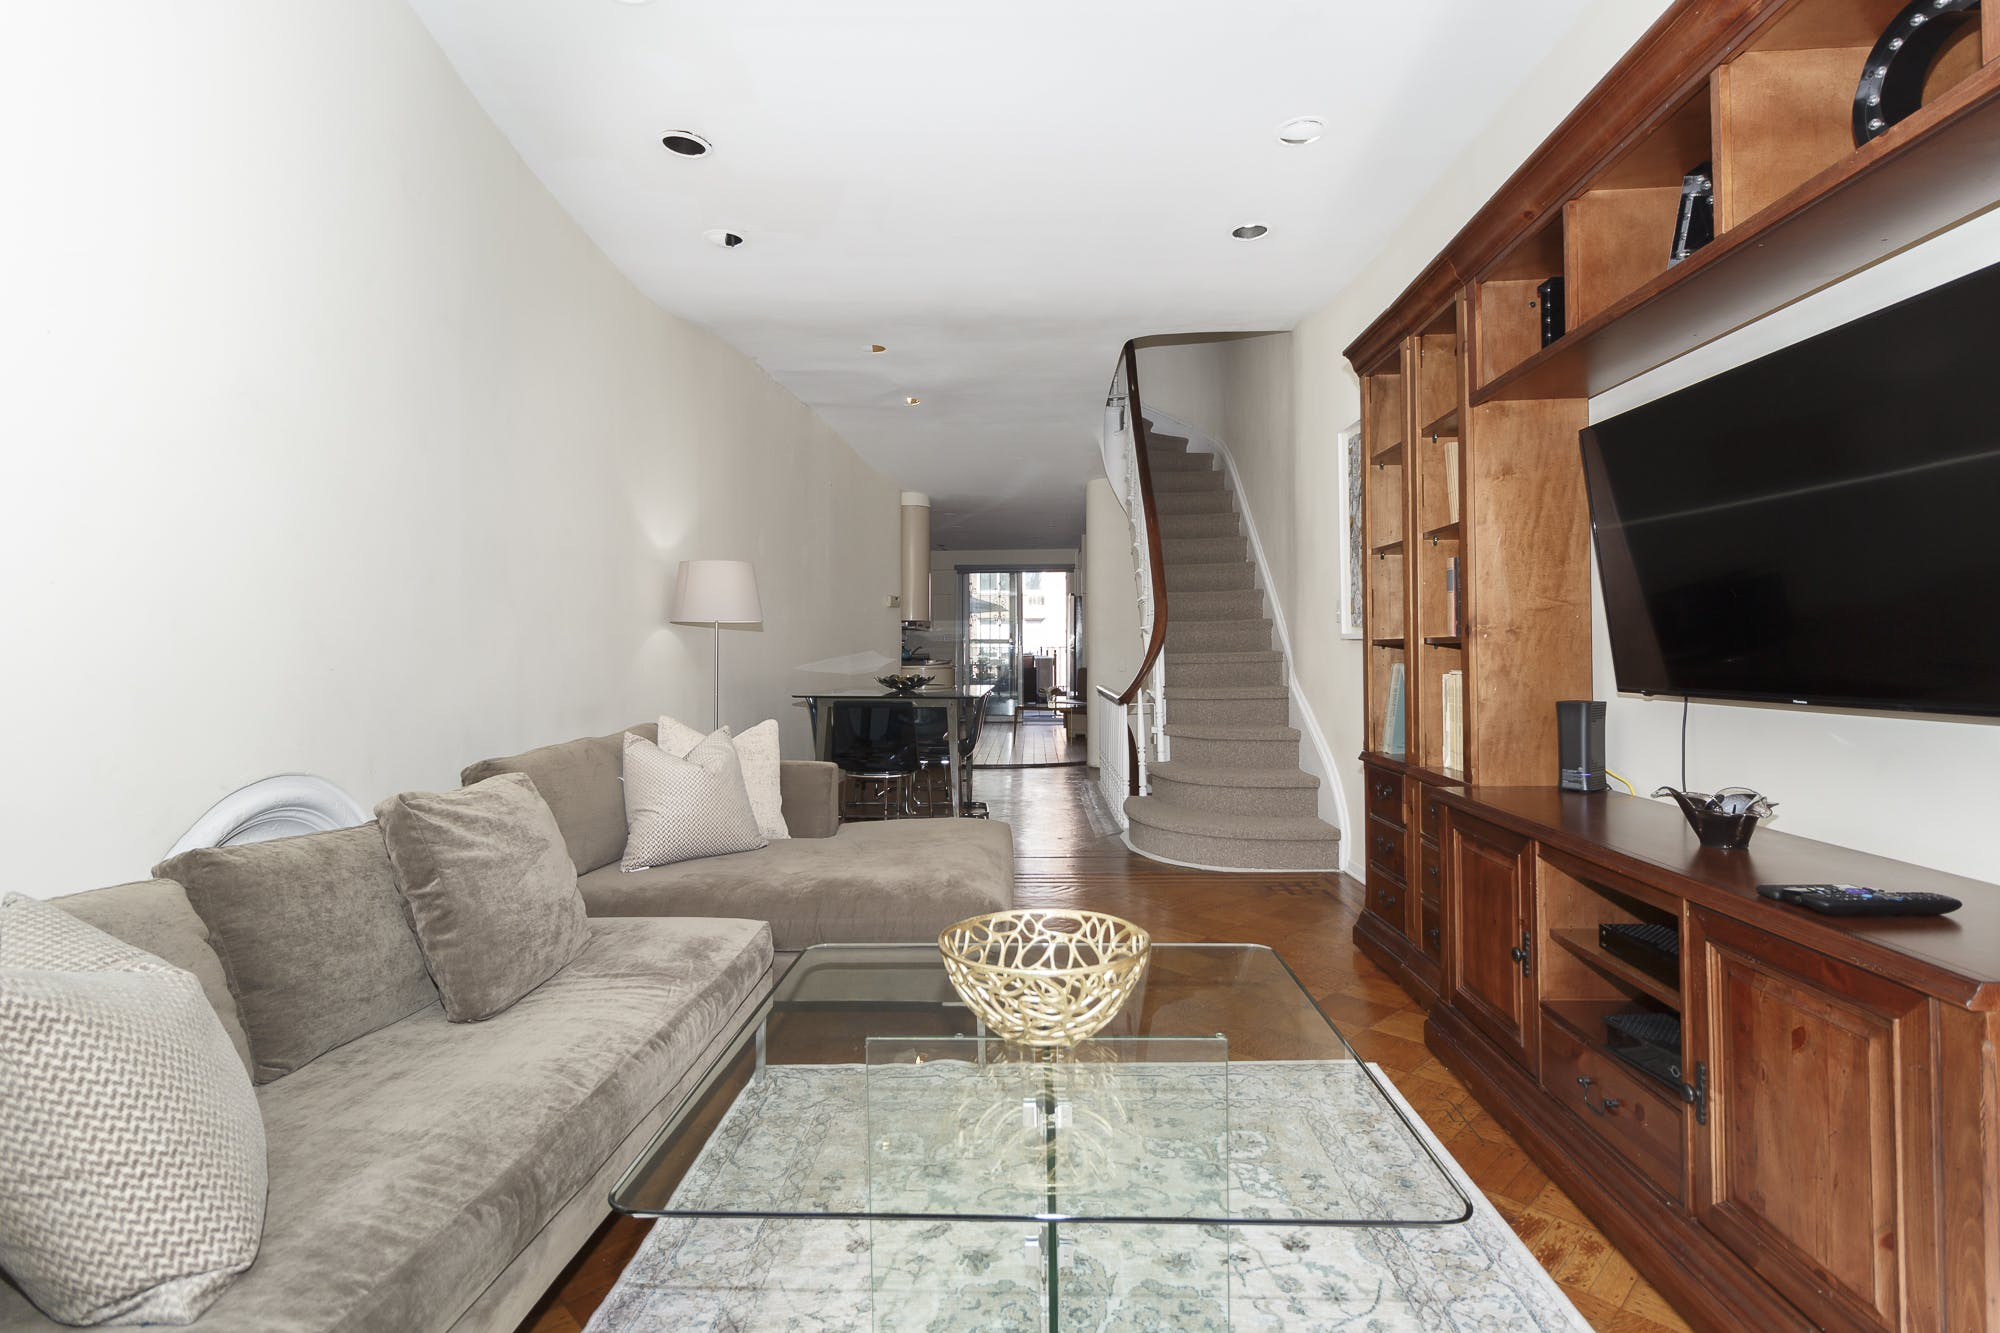 151 East 29th Street - 59391f5a-78e6-448c-9f1d-514ed2db95da - New York City Townhouse Real Estate